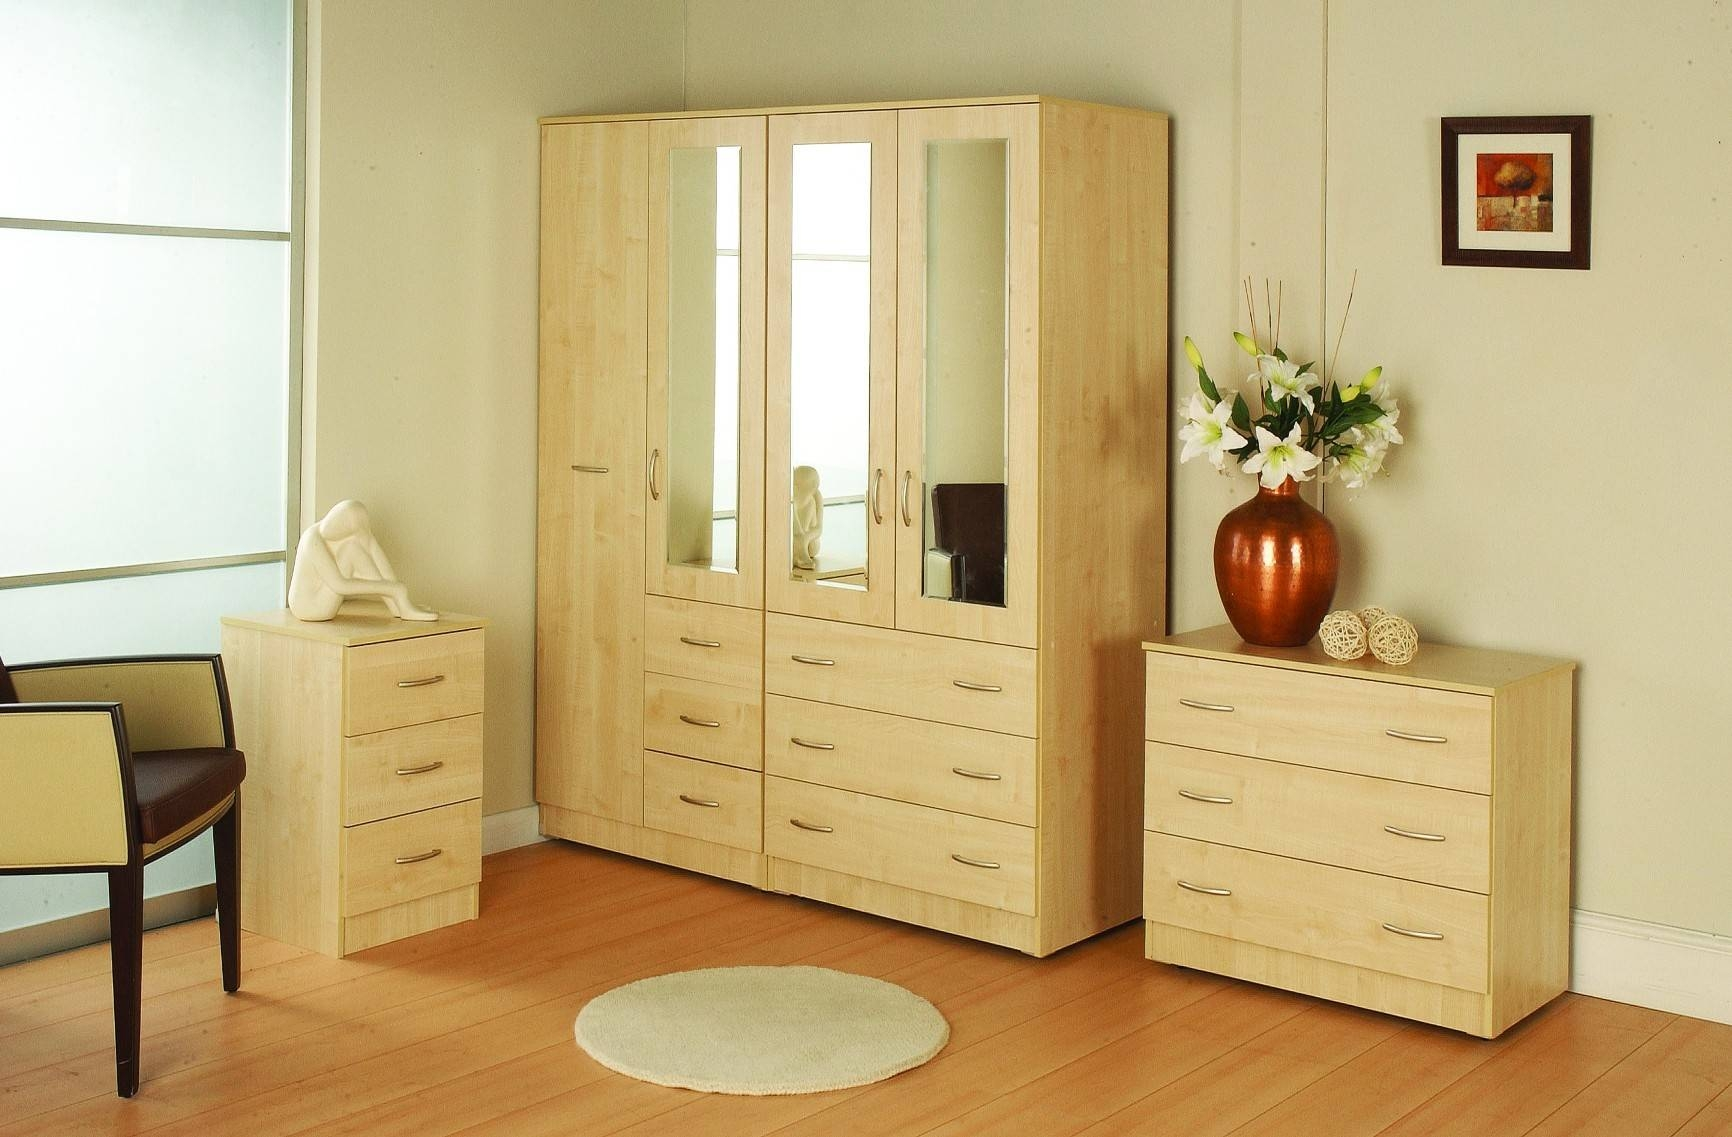 Adams Furniture Store - Bedroom in Chest Of Drawers Wardrobes Combination (Image 1 of 15)